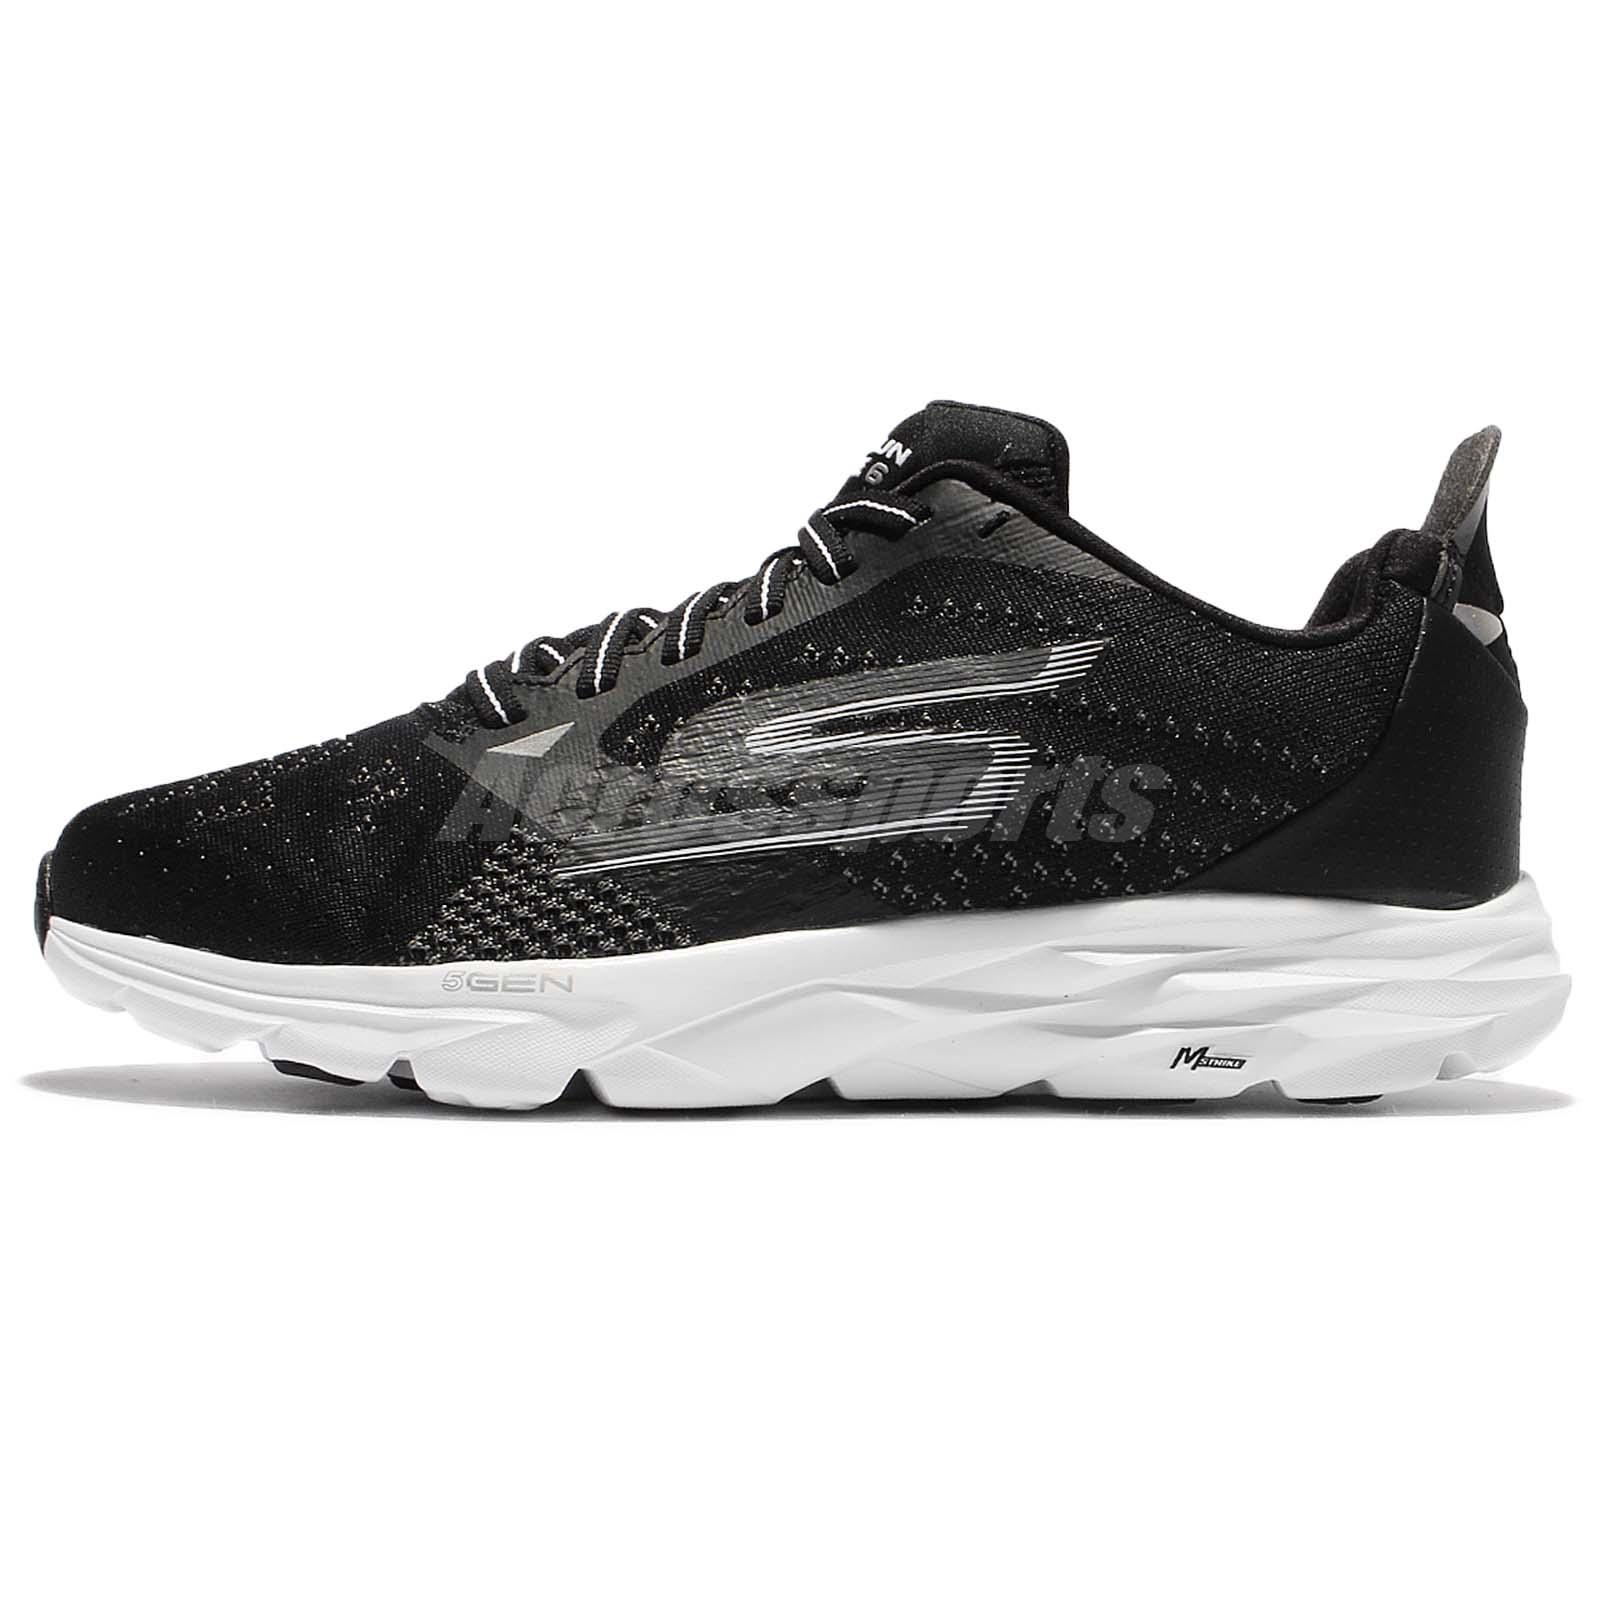 Buy skechers gorun ride 6 price   OFF76% Discounted a36f459bd6702